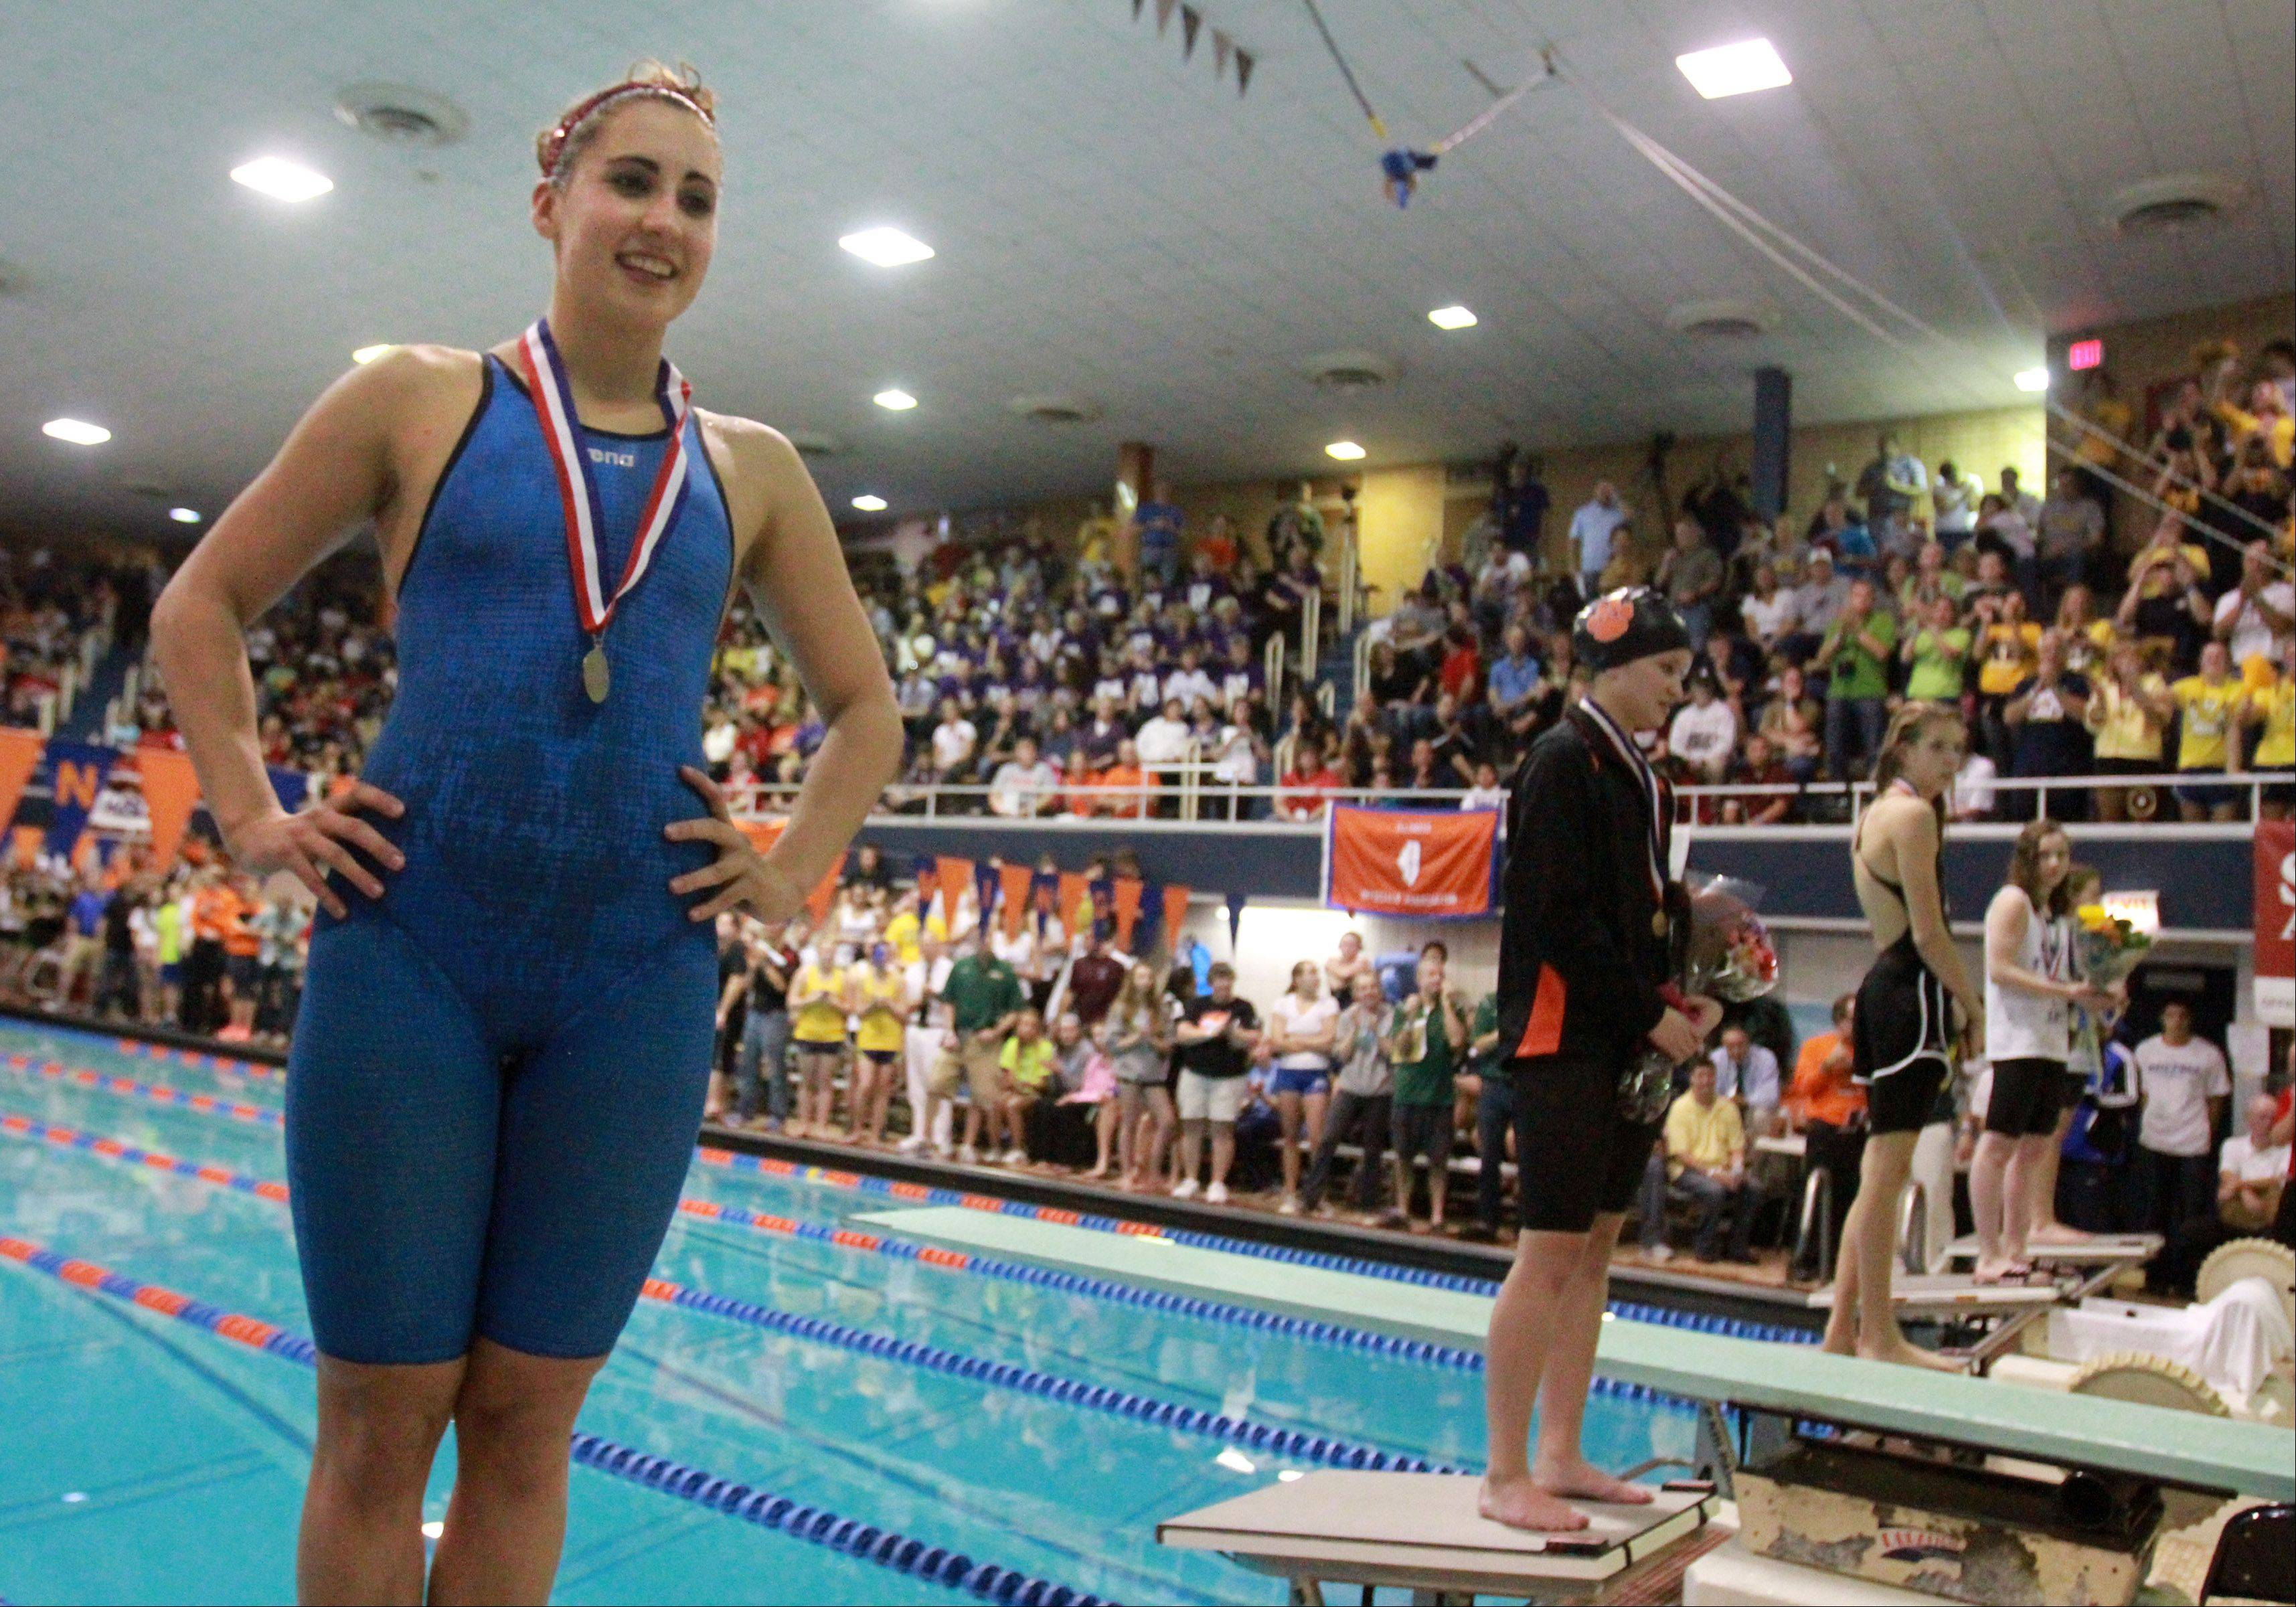 Naperville Central's Julia Roller placed second in the 200-yard freestyle at the IHSA state championships in Evanston on Saturday.